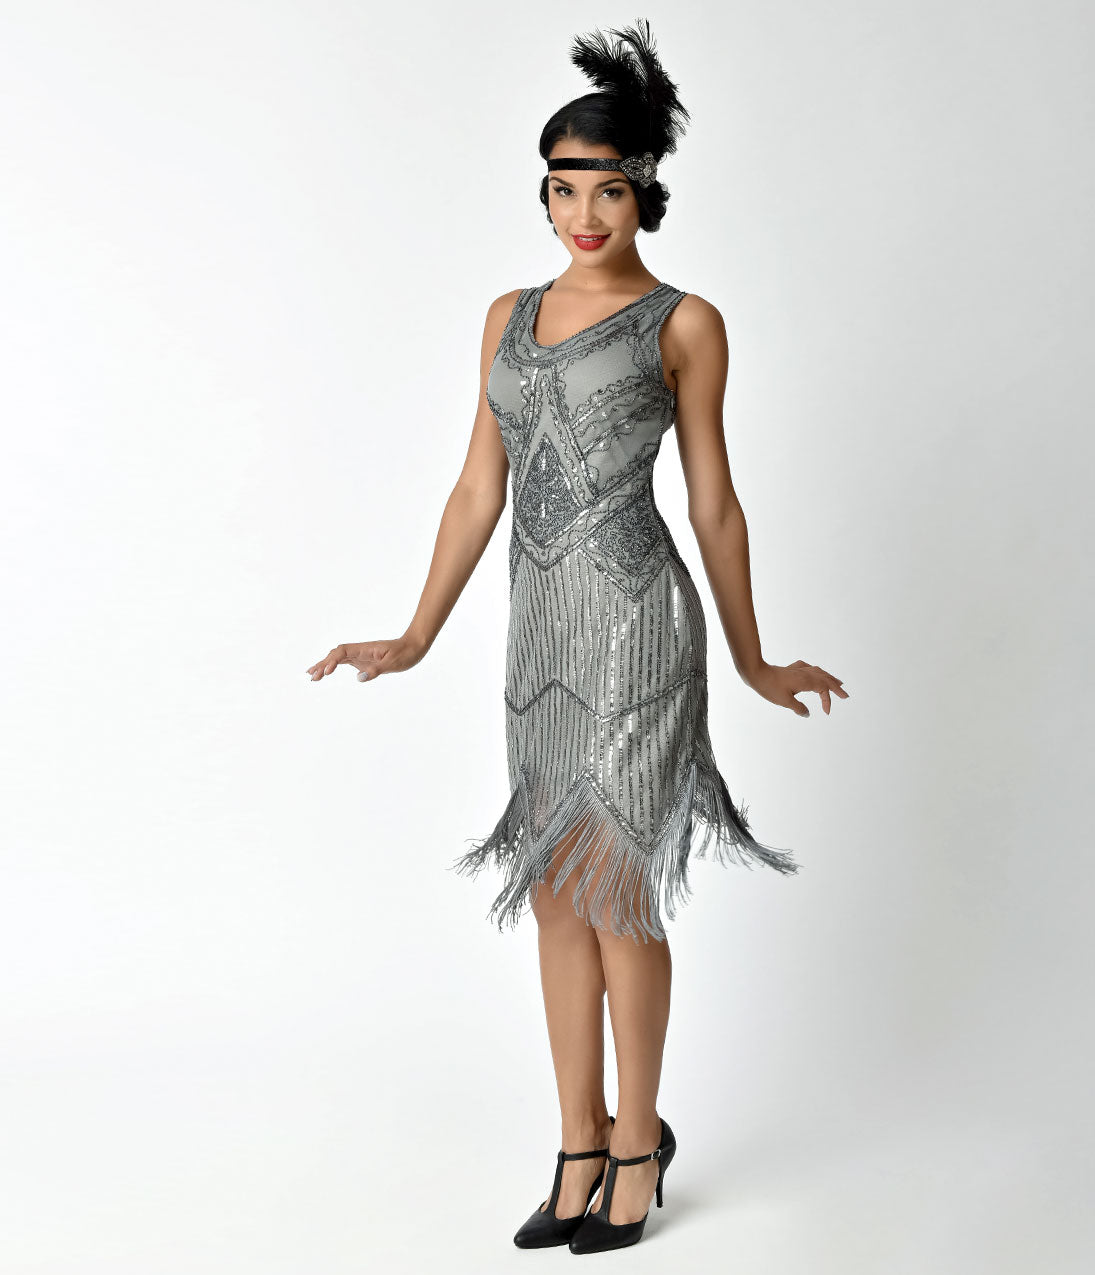 1920s Style Dresses, Flapper Dresses 1920 Sequin Juliette Fringe Flapper Dress $110.00 AT vintagedancer.com